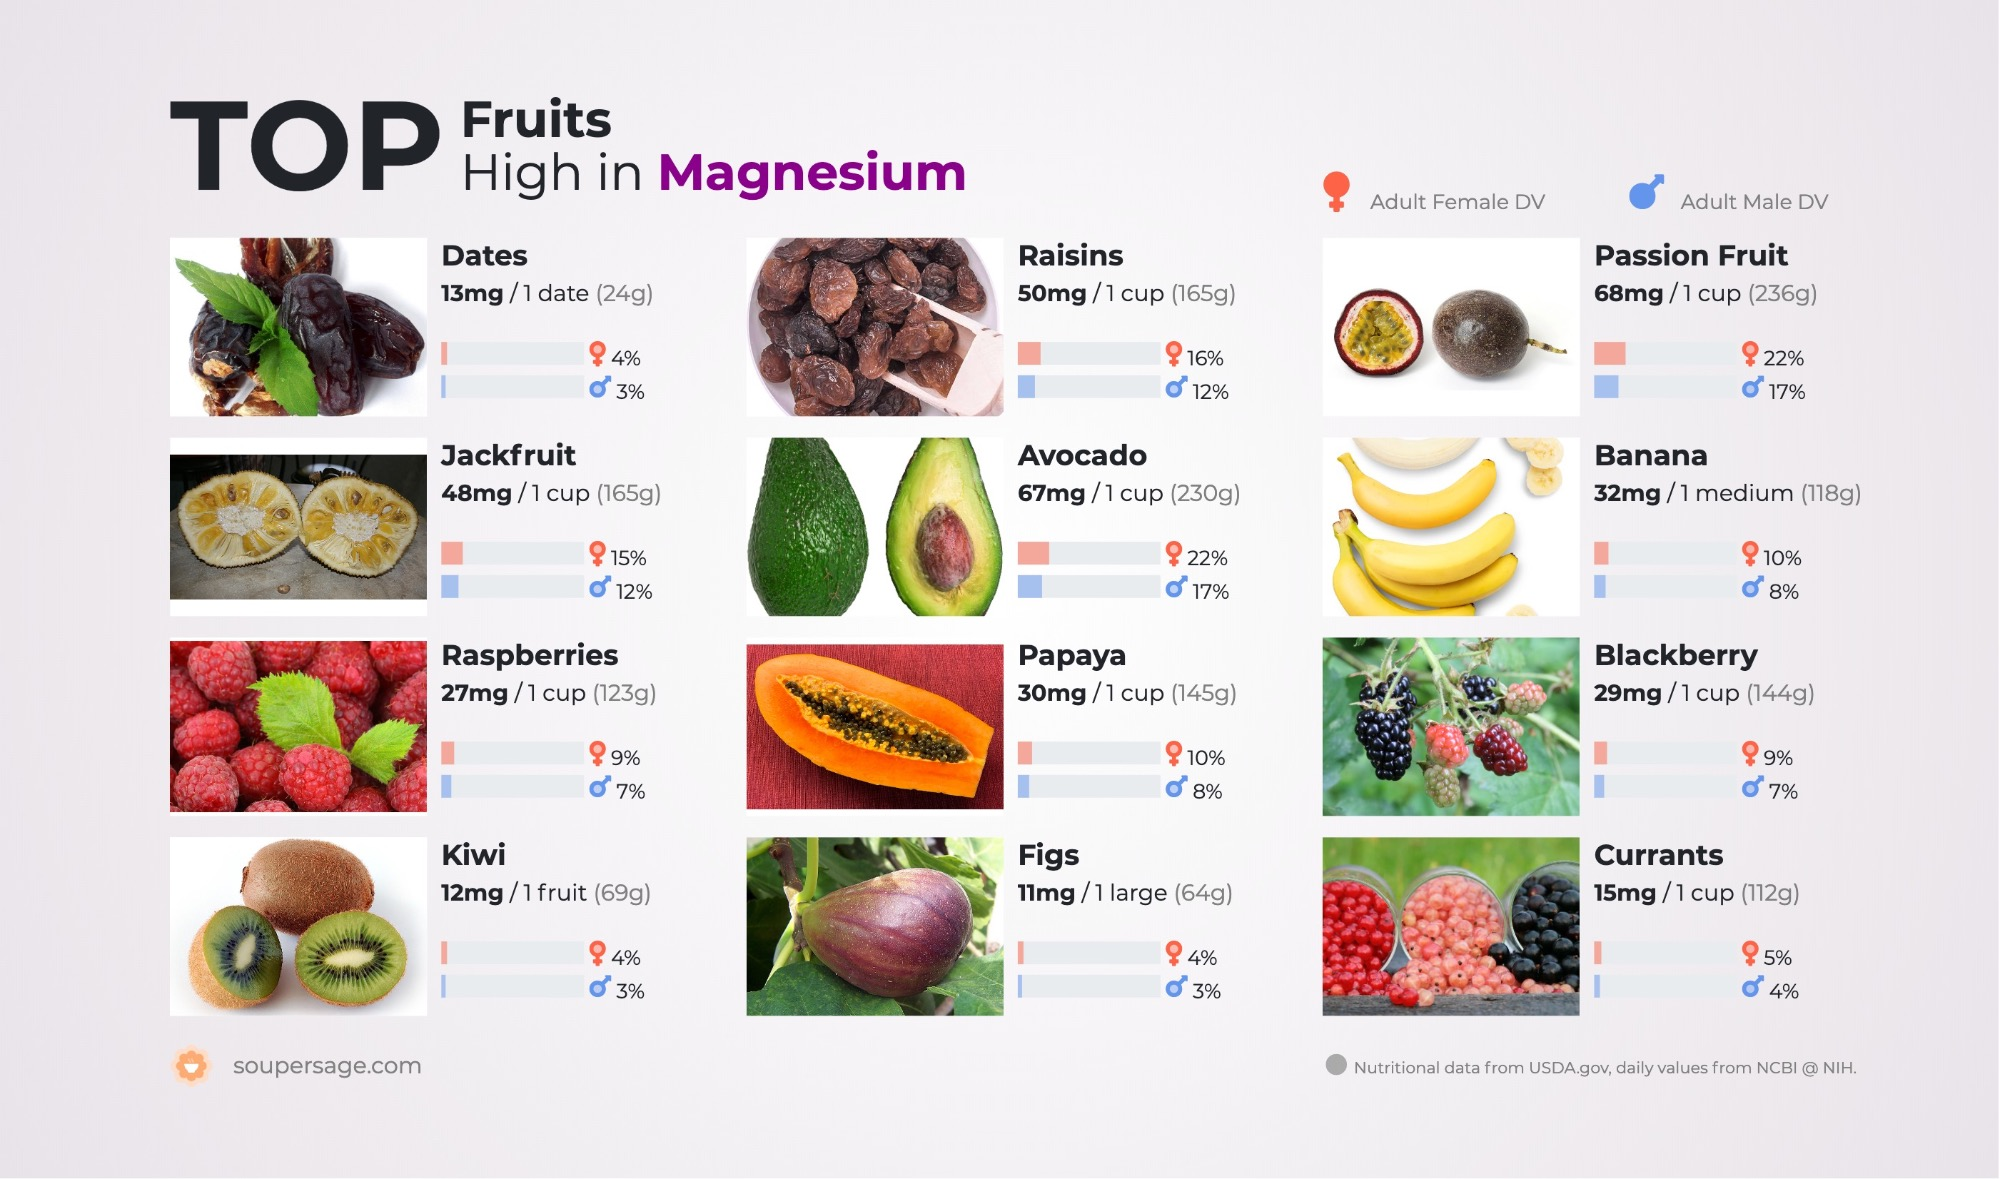 image of Top Fruits High in Magnesium